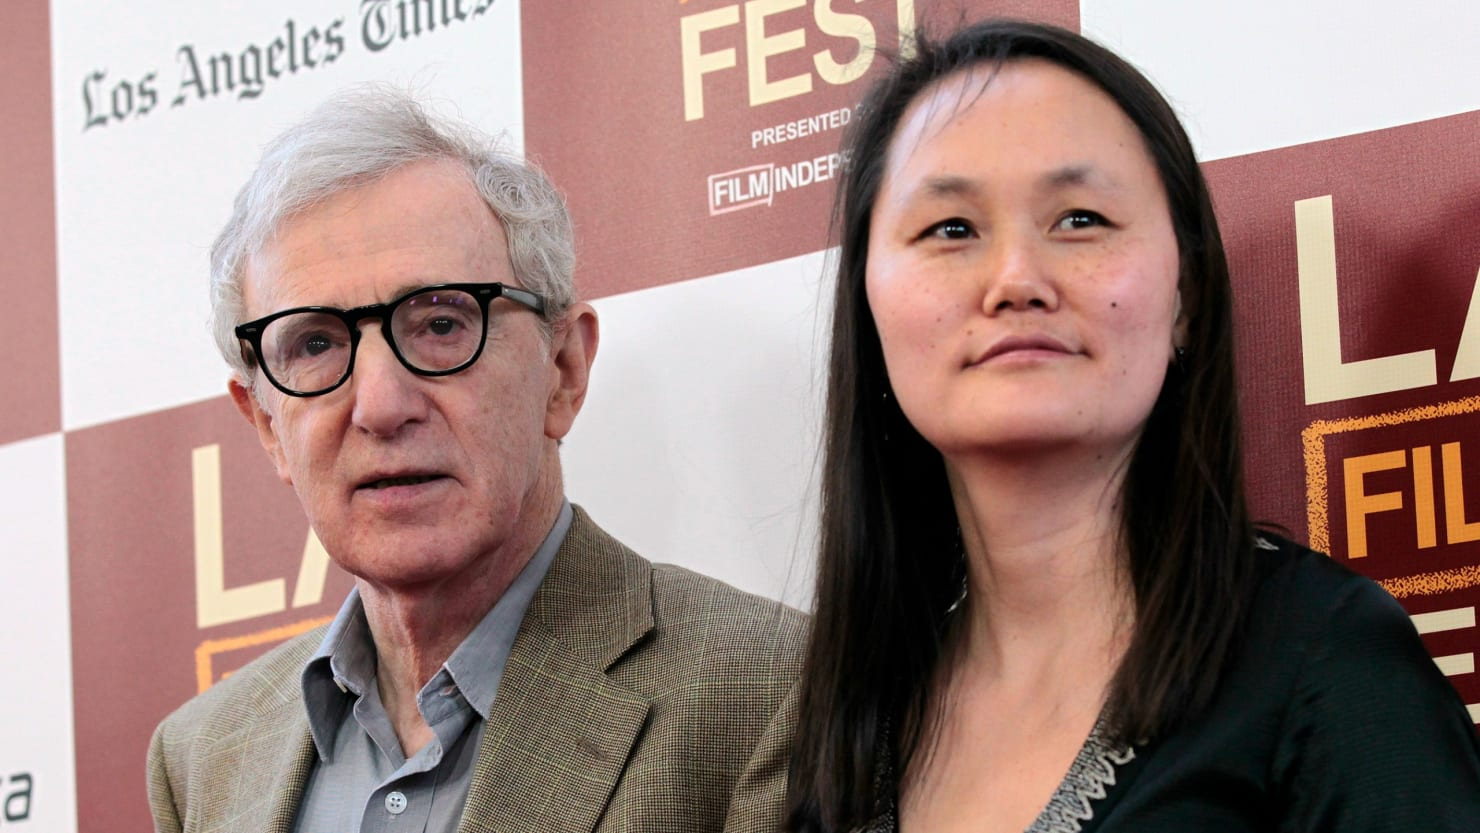 Woody Allen's Wife, Soon-Yi Previn, Breaks Silence and Bashes Mia Farrow